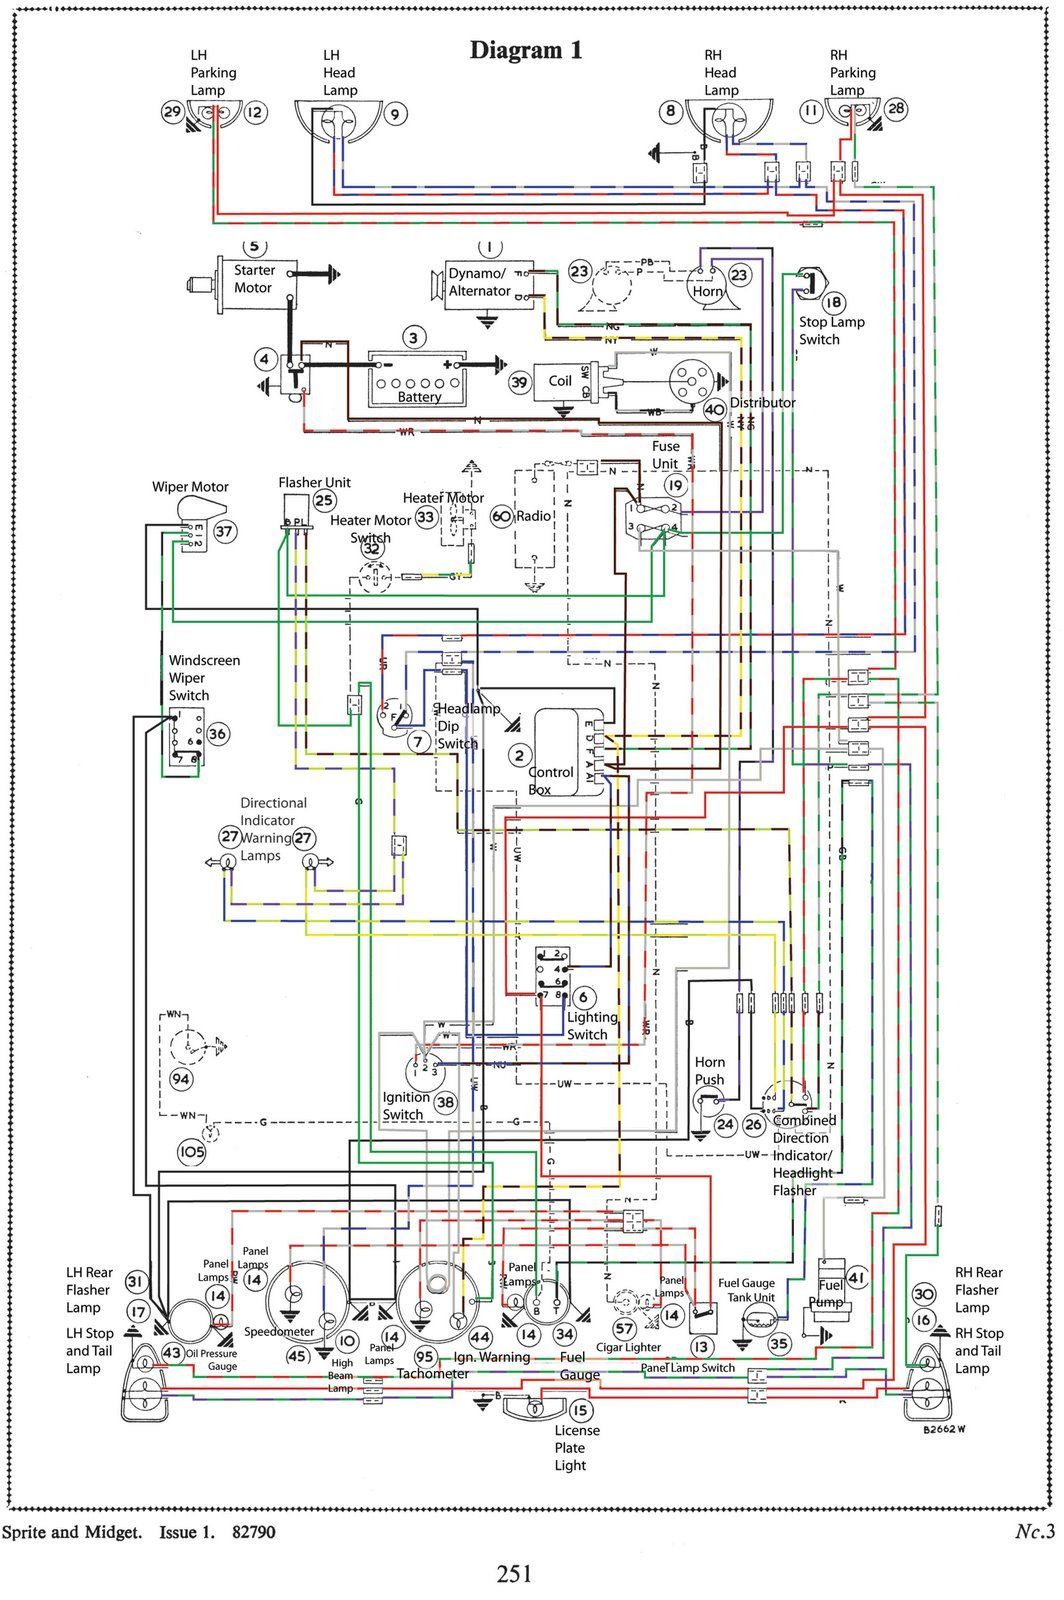 1969 Vw Beetle Ignition Coil Wiring Diagram 2002 Honda Accord 2 3 Timing Belt Mk3 Sprite | Austin Healey & Mg Midget Pinterest Sprites, ...